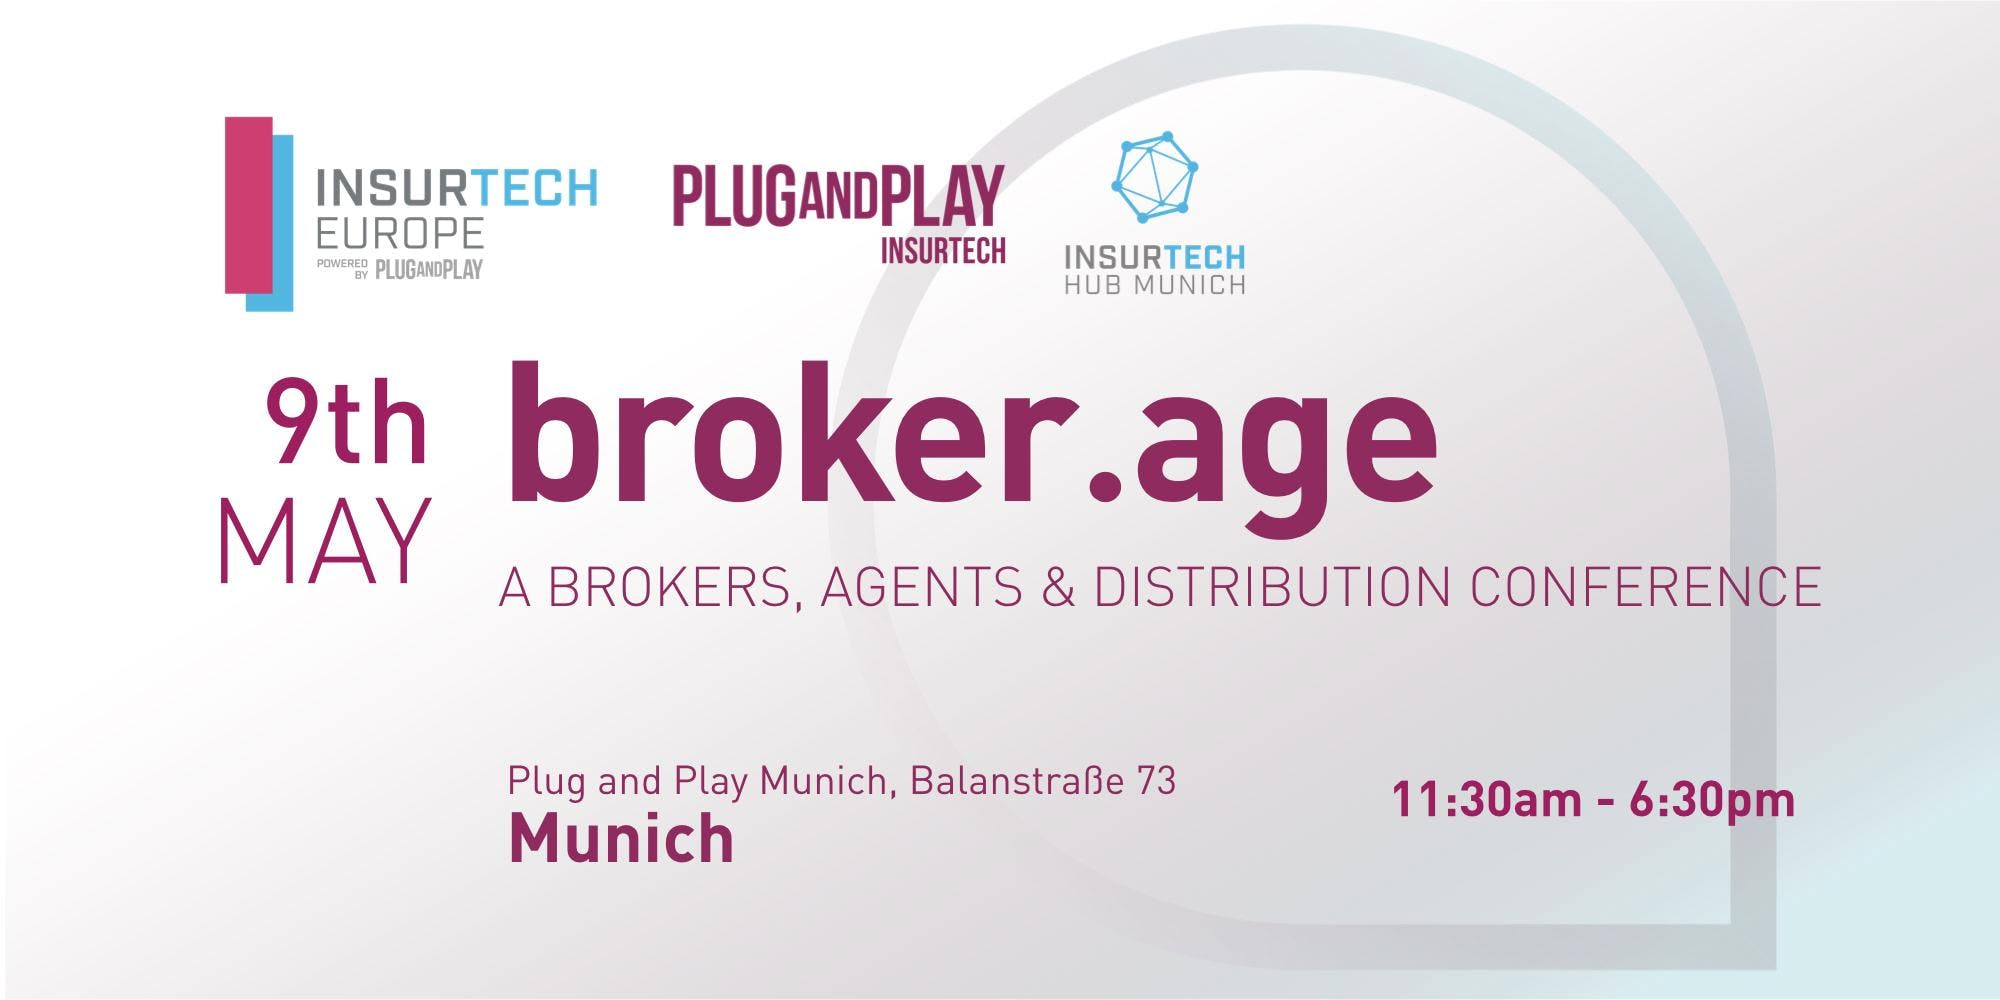 Plug and Play Insurtech's Broker•Age: A Brokers, Agents & Distribution Conference